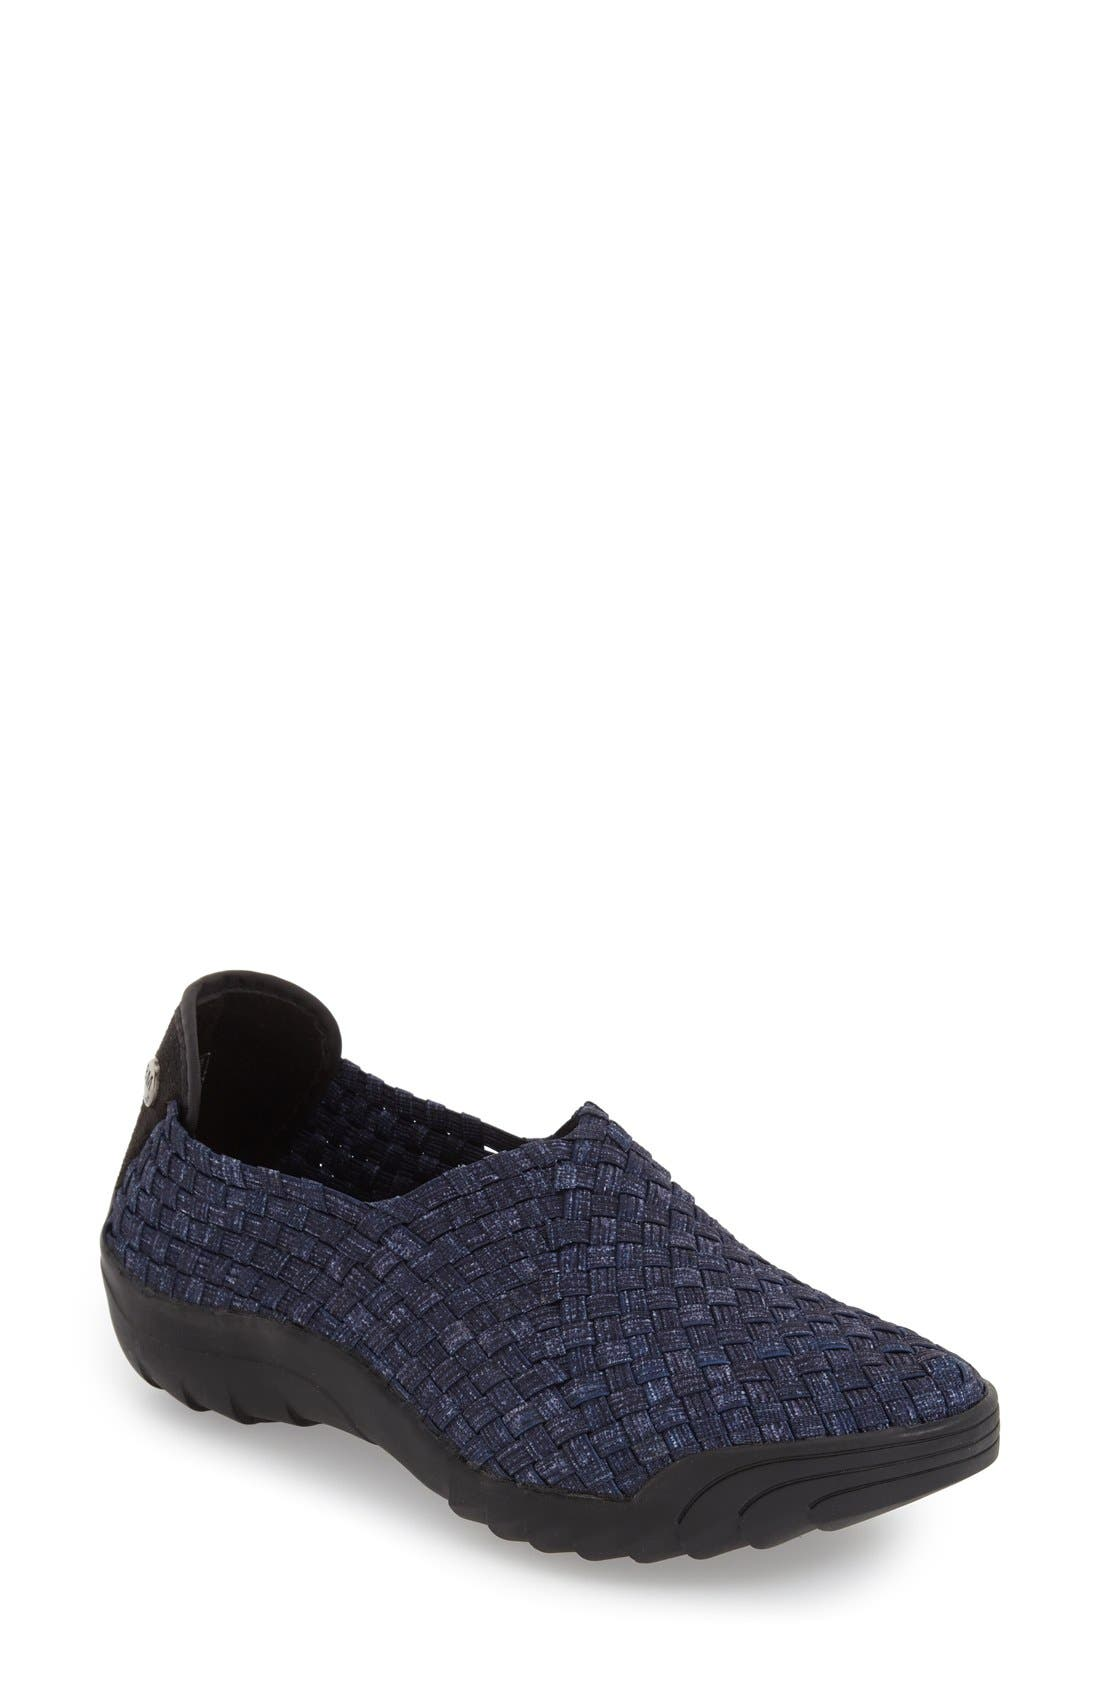 'Rigged Jim' Slip-On Sneaker,                             Main thumbnail 1, color,                             Jeans Fabric